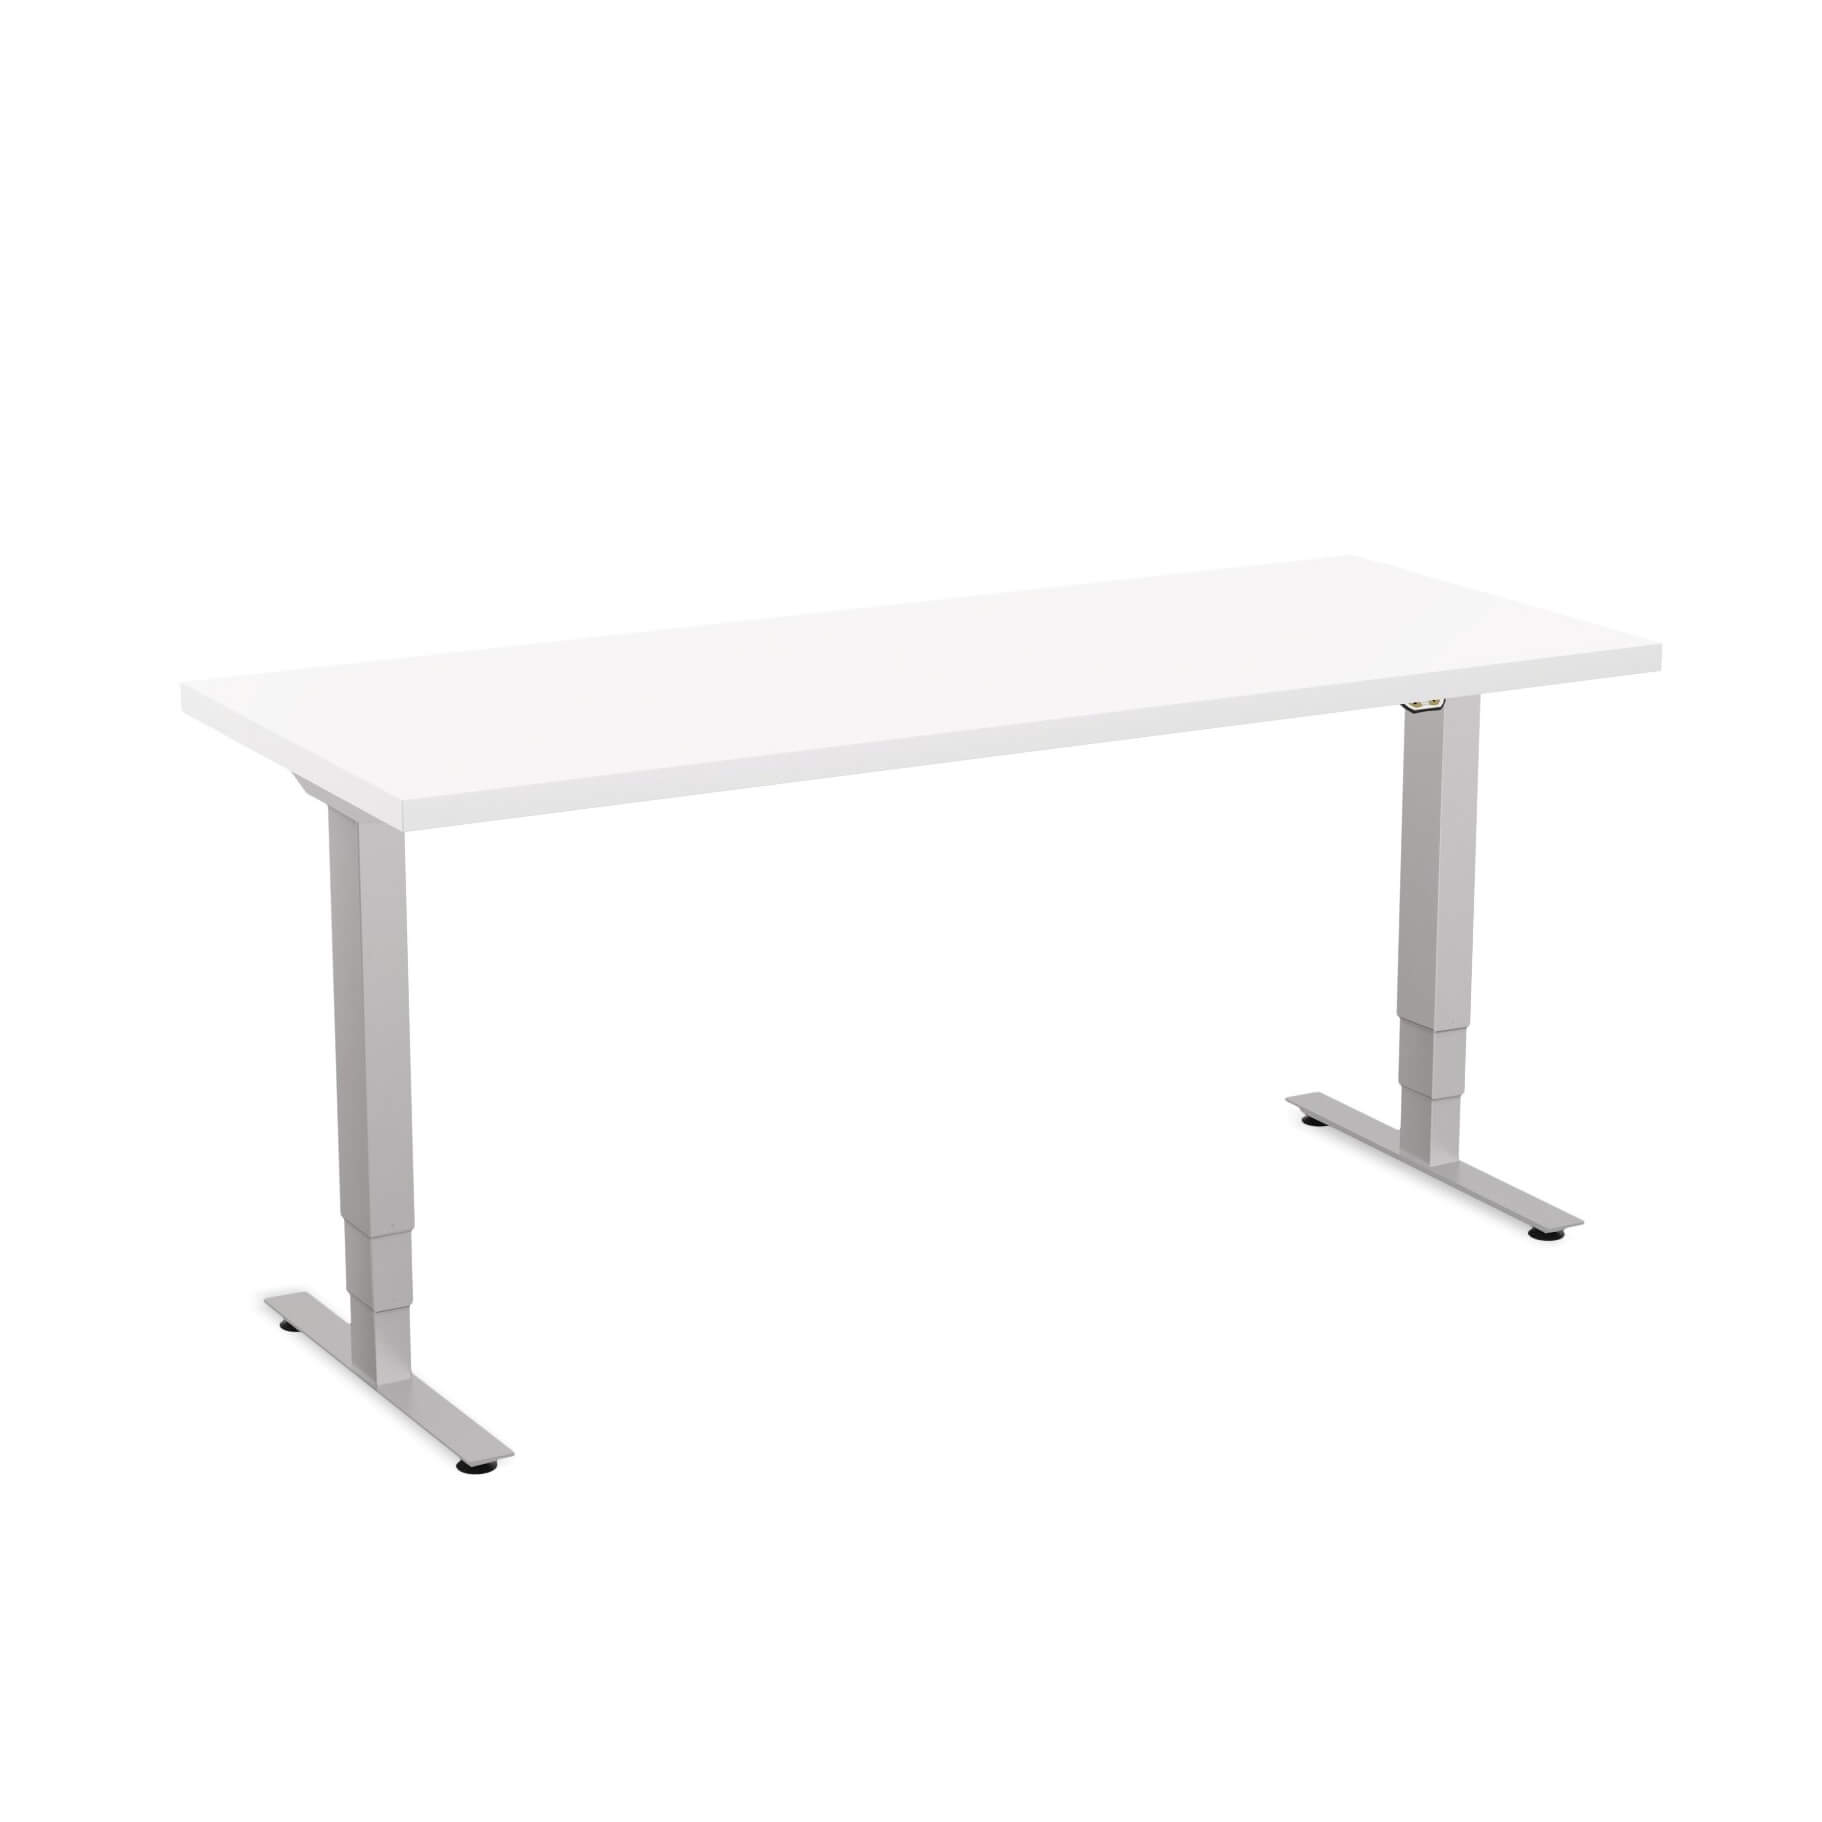 Sit stand desk adjustable CUB 1D PATR 2460 WH EPS